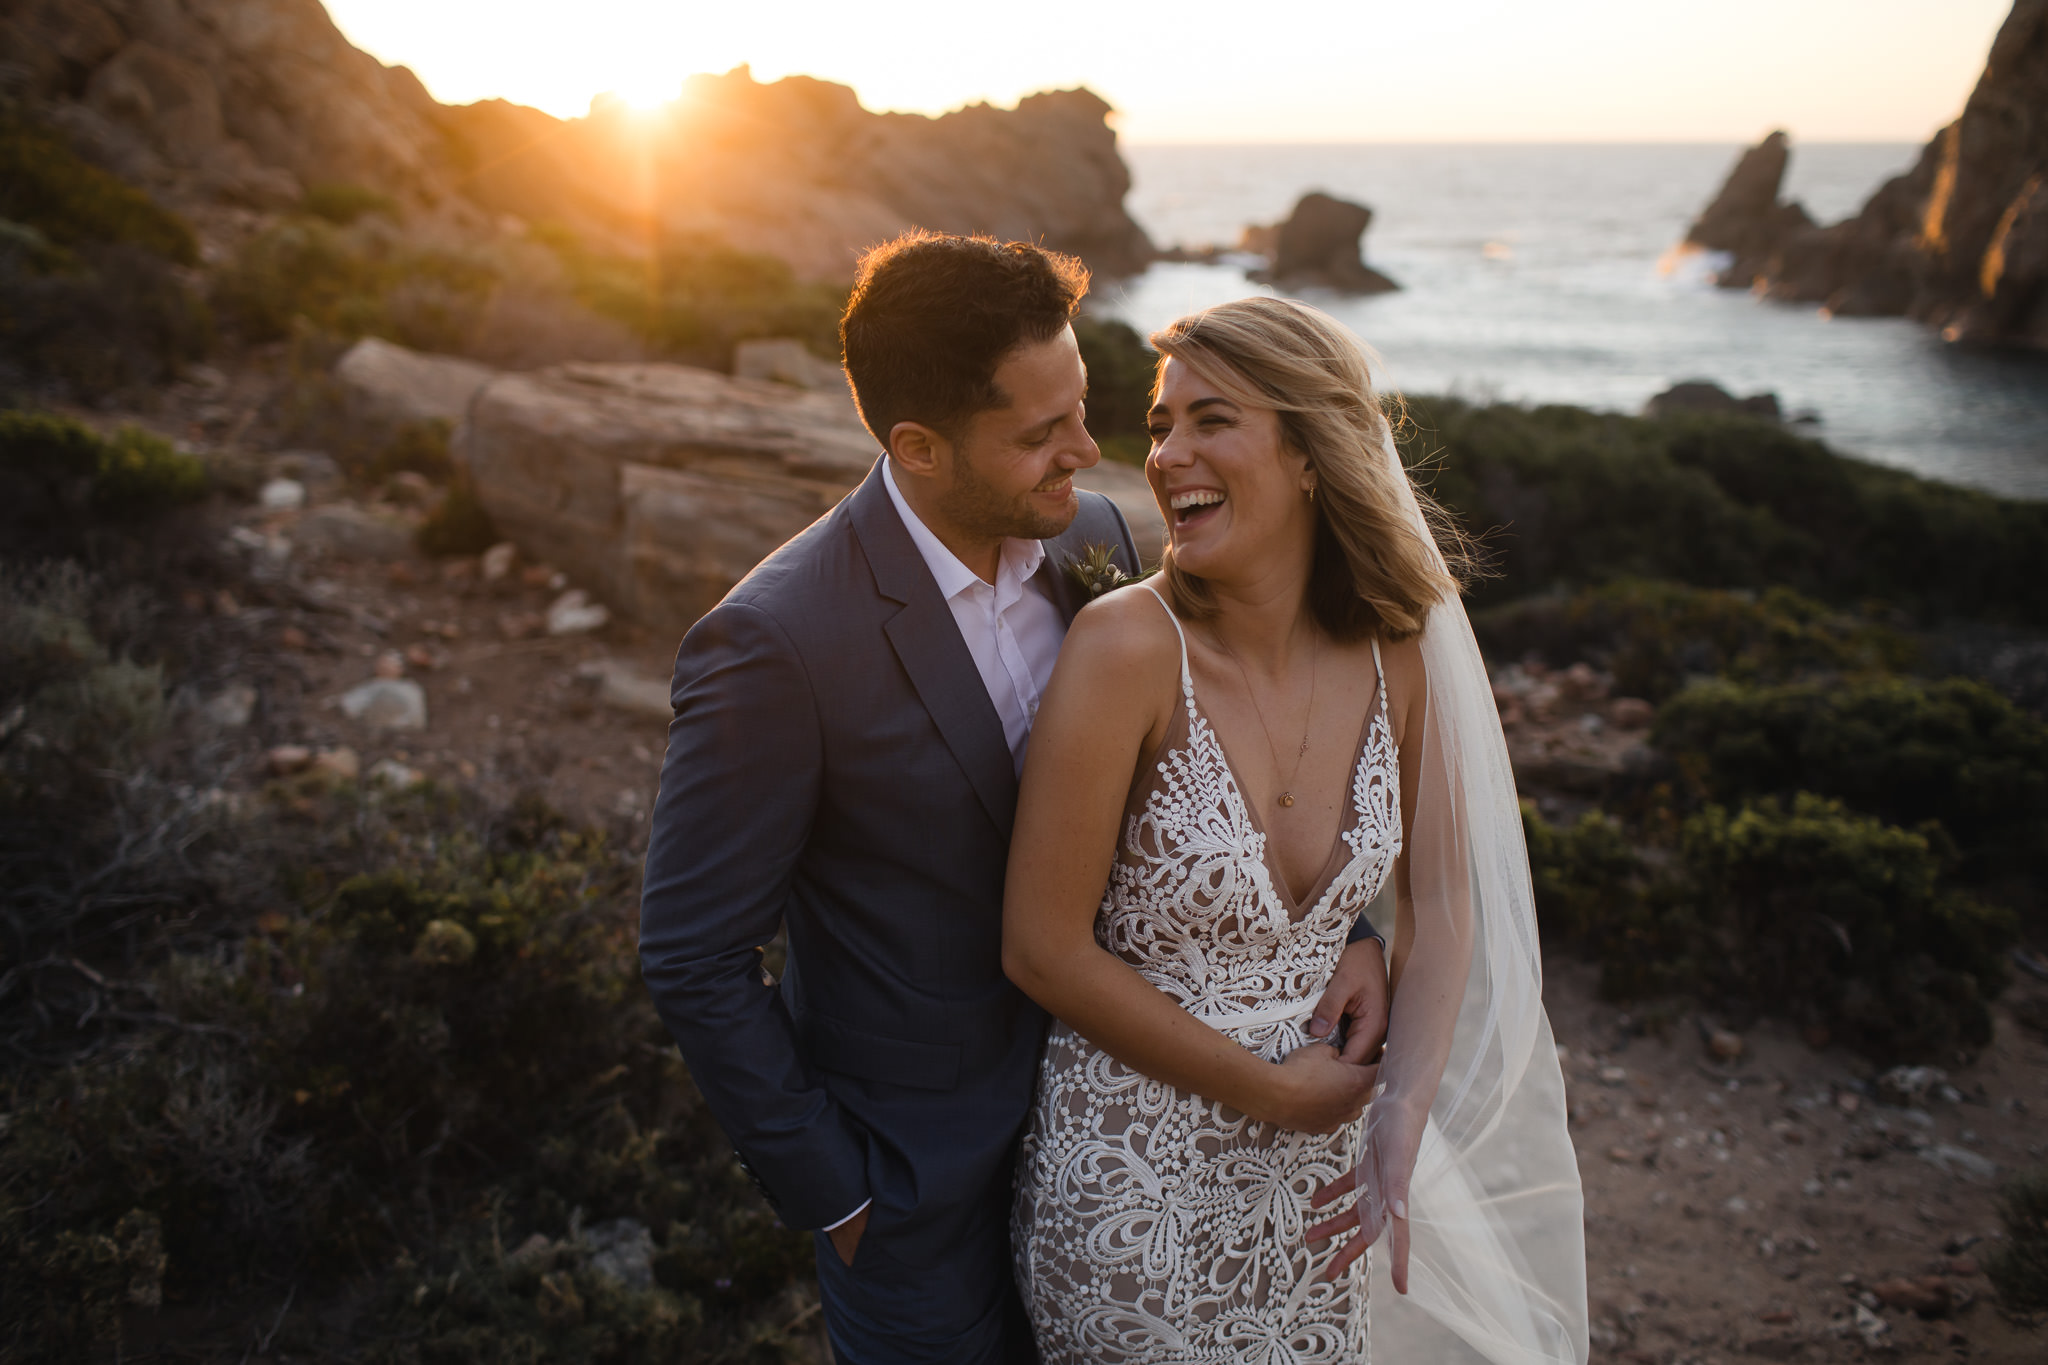 Groom hugging bride as she lens back into him. Her hair is blowing in the wind and they are both laughing with a beautiful golden sunset in the background